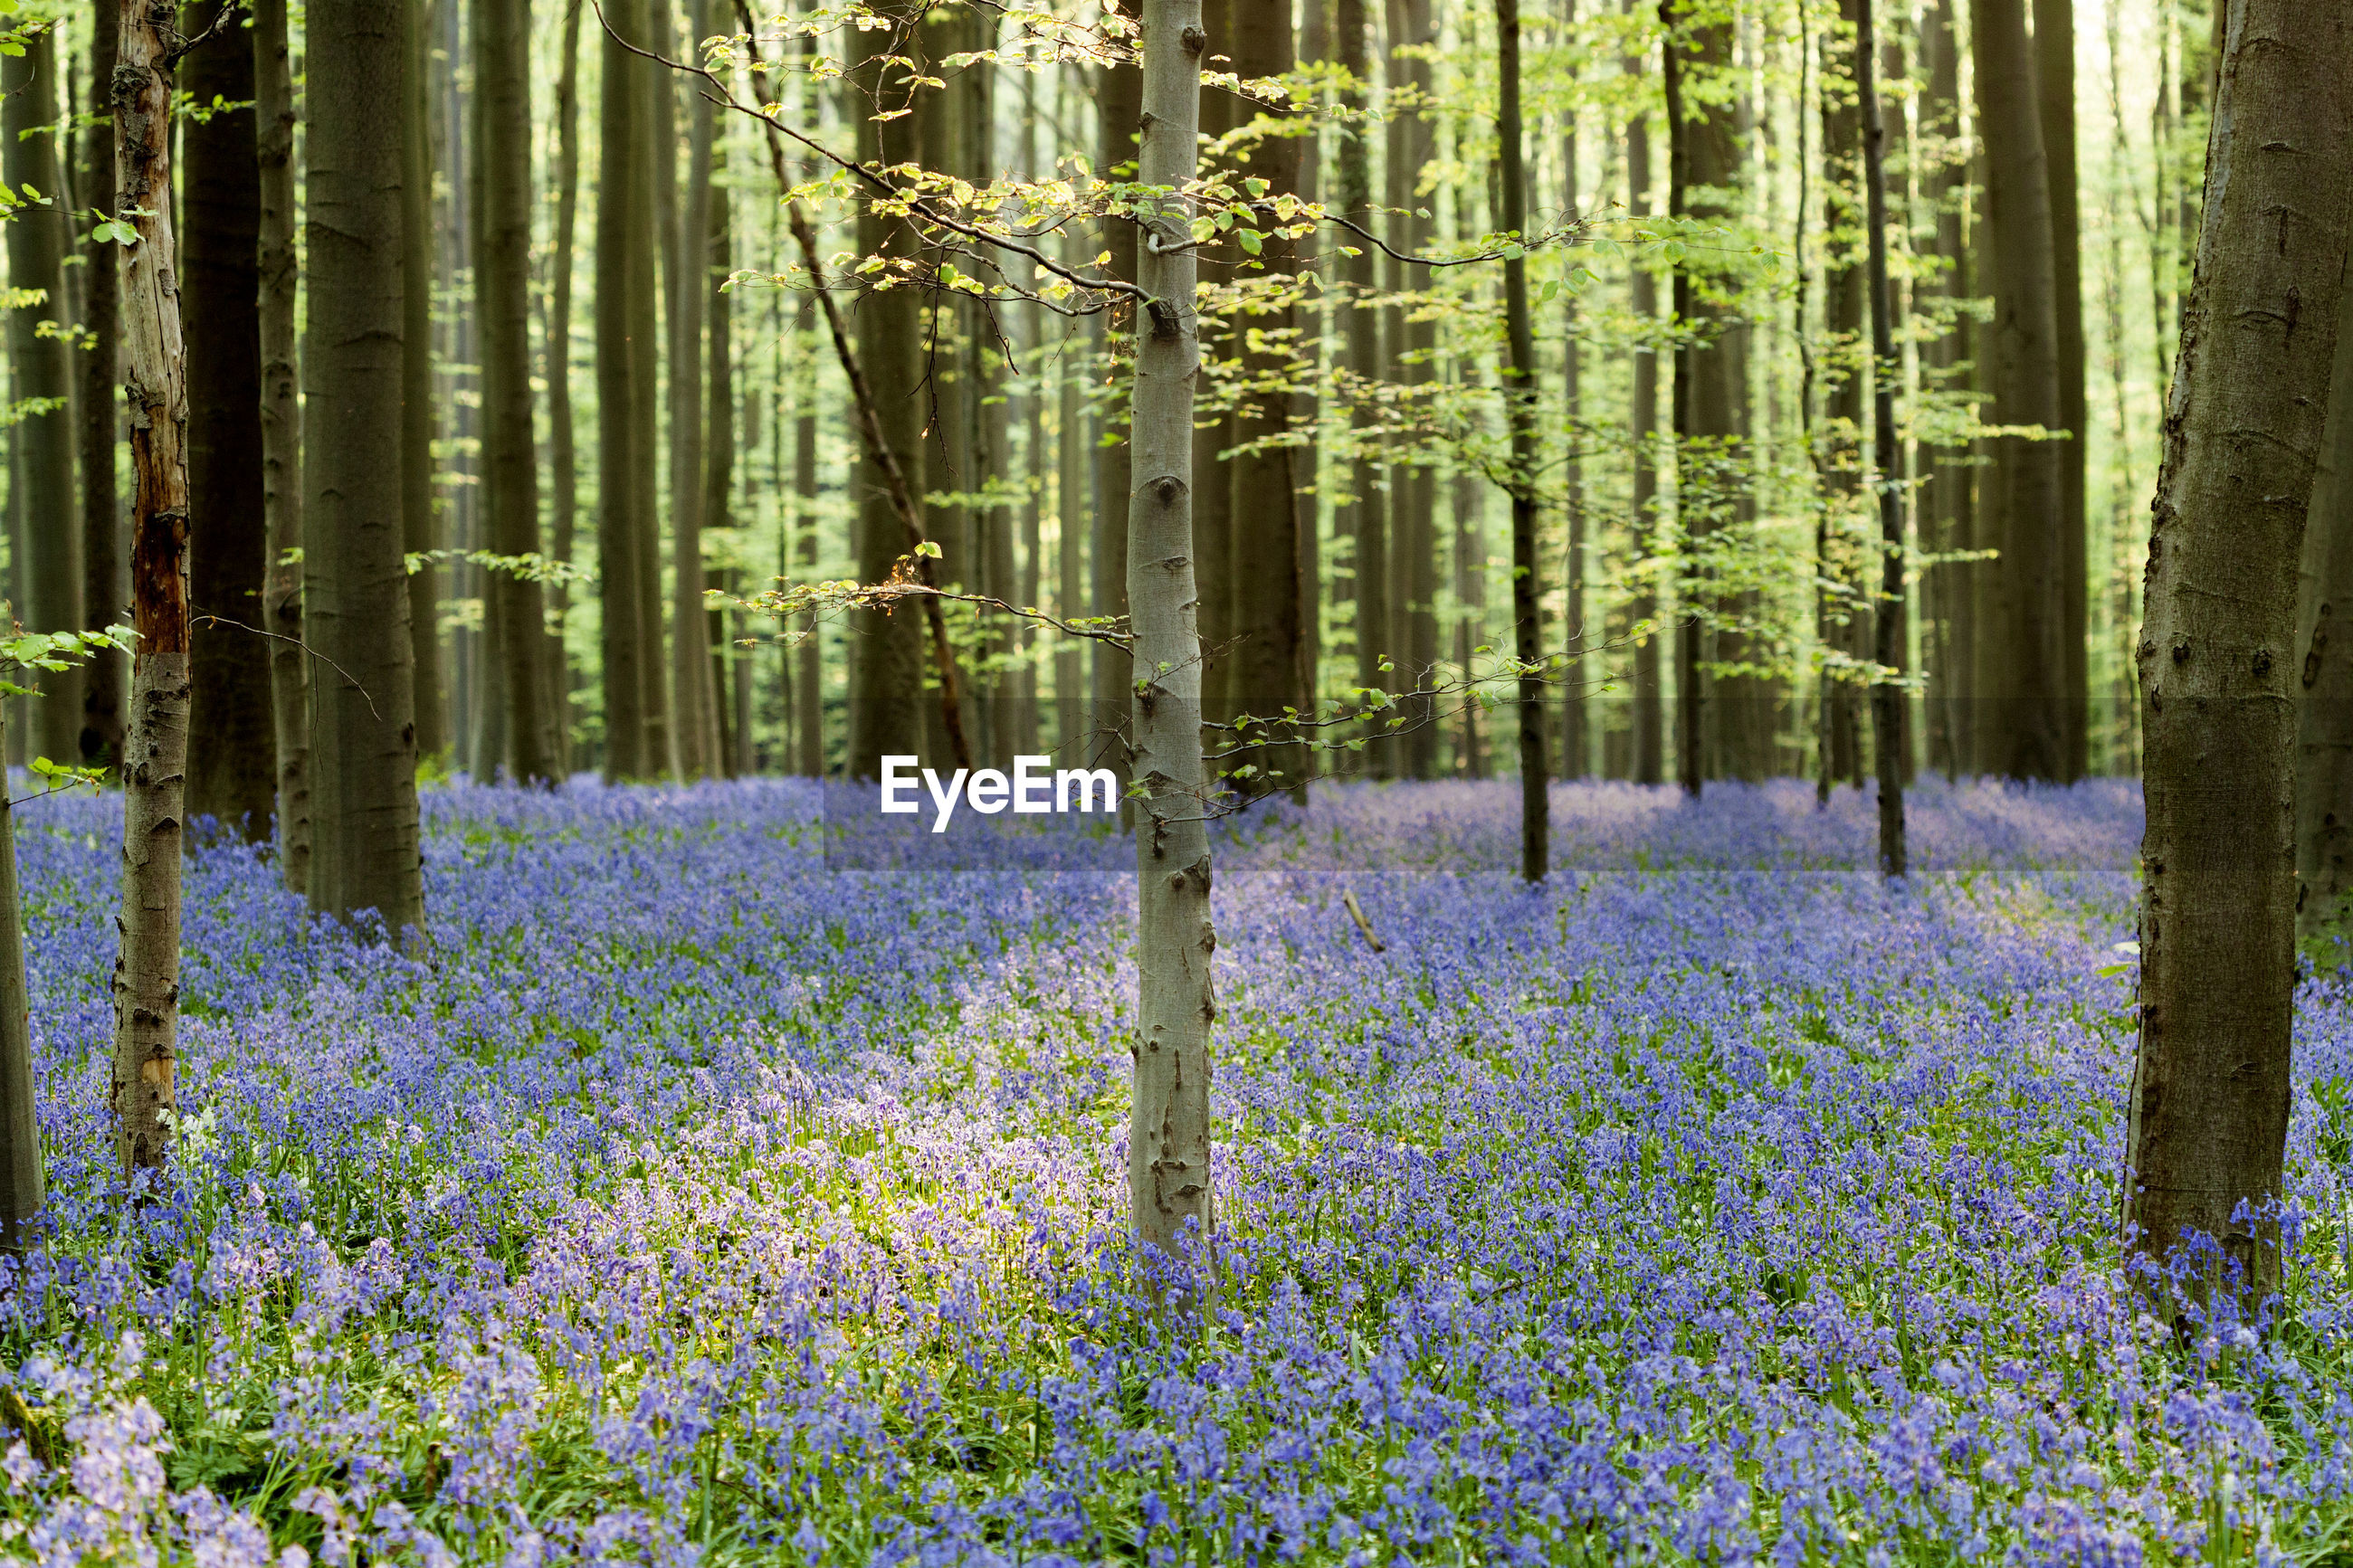 PANORAMIC VIEW OF FLOWER PLANTS IN FOREST